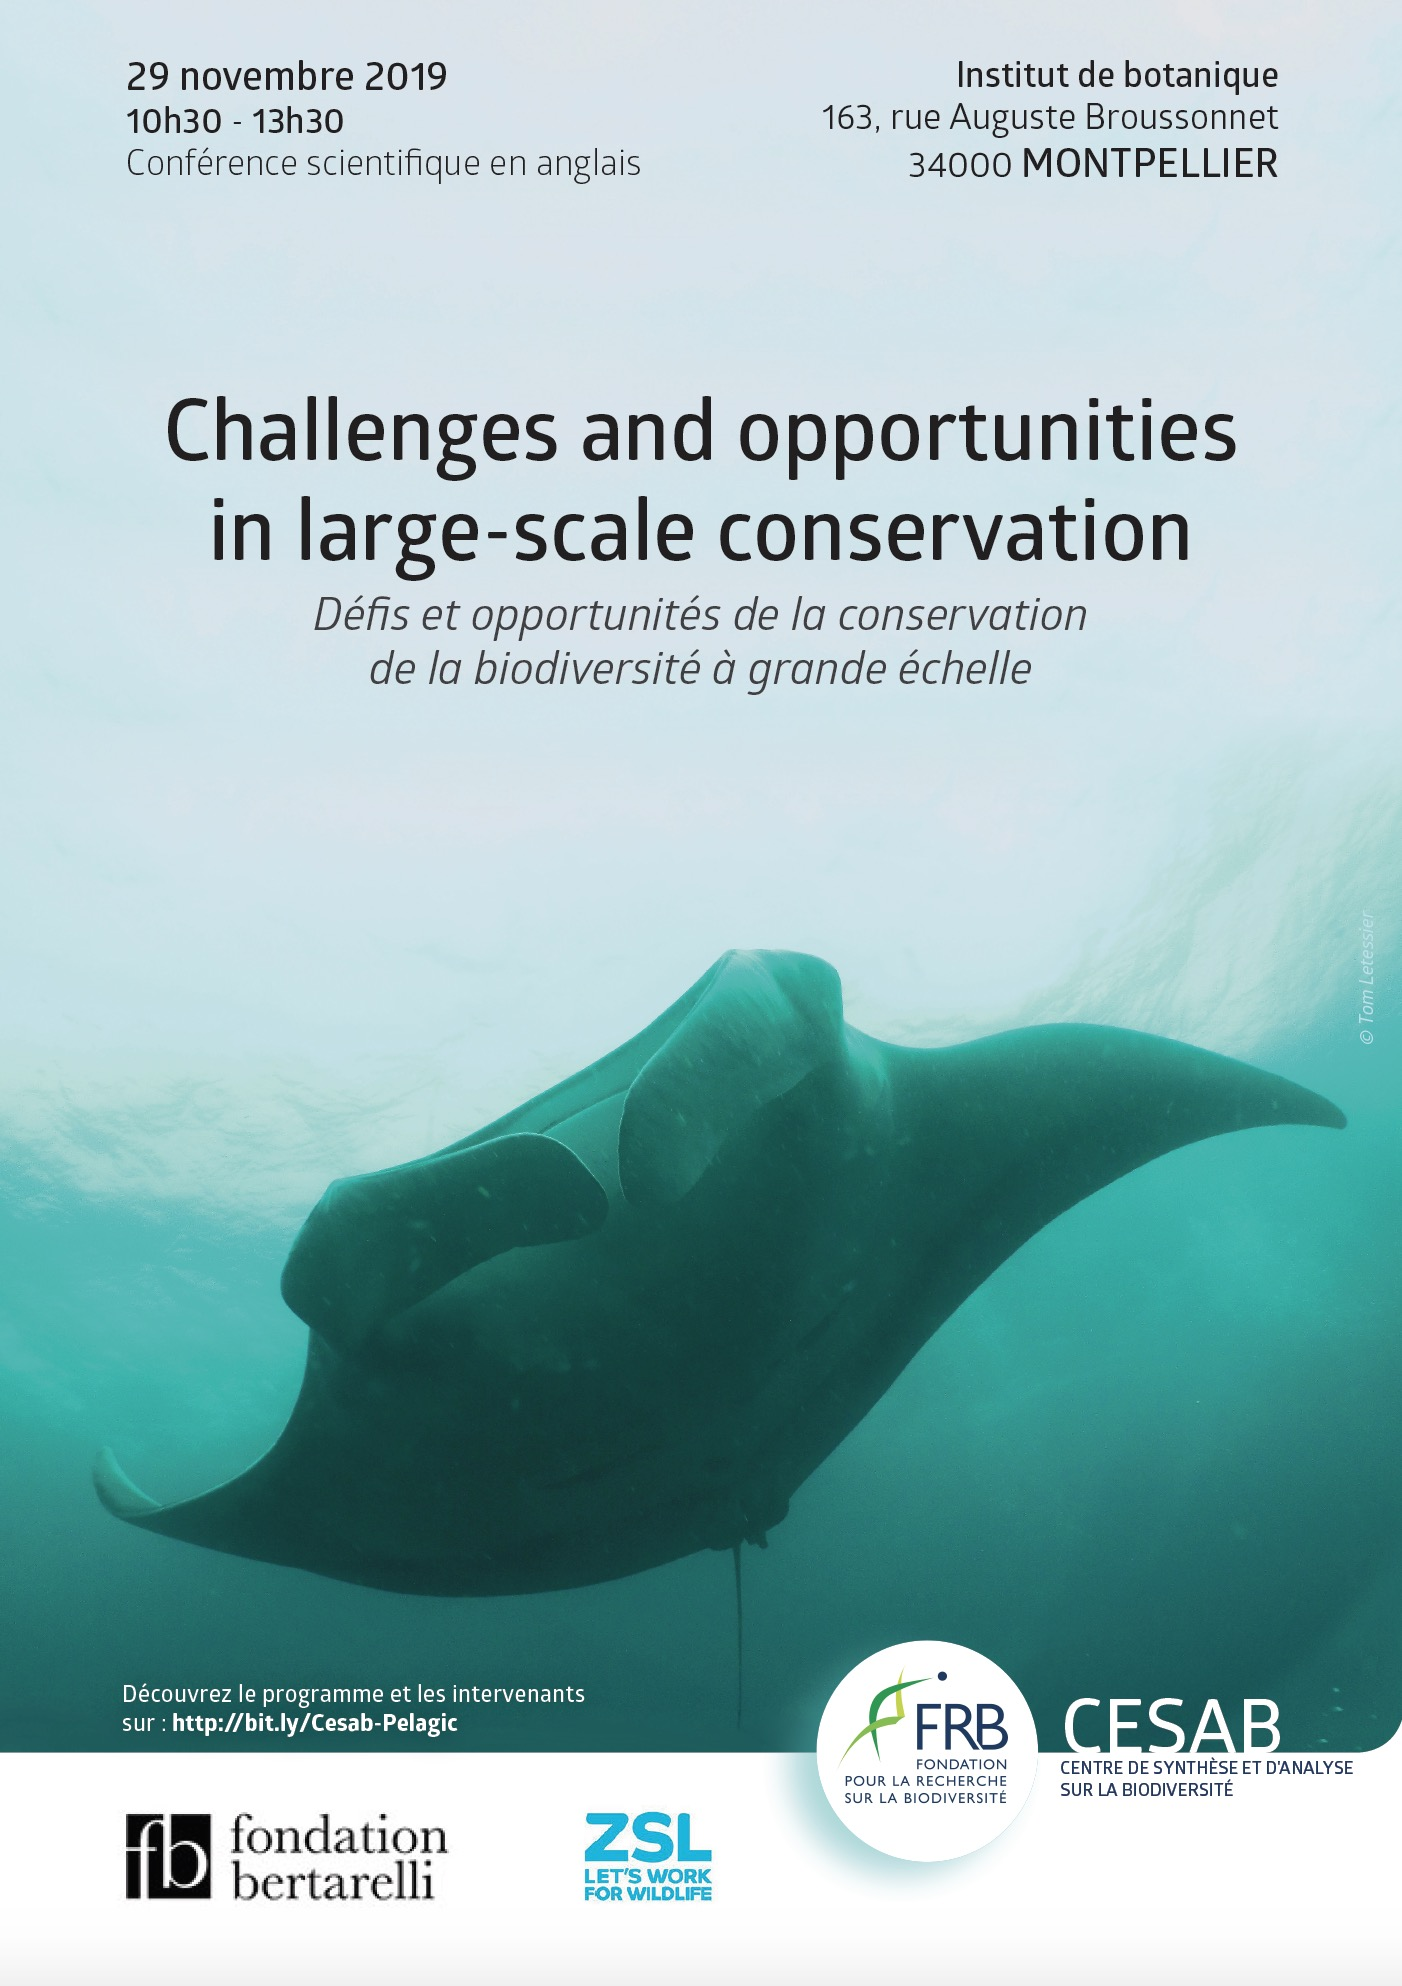 [FRB-CESAB] Challenges and opportunities in large-scale conservation